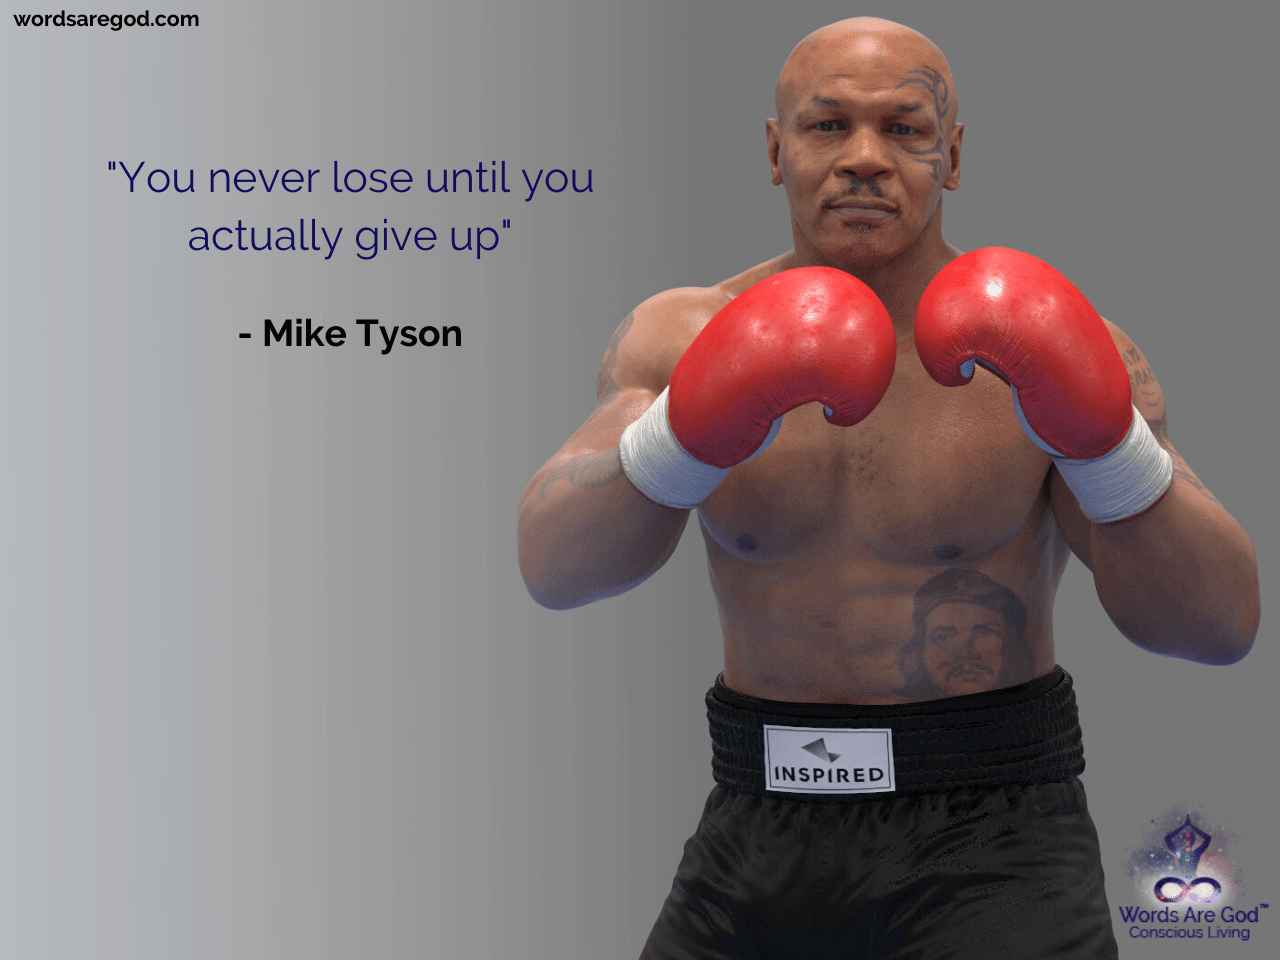 Mike Tyson Motivational Quote